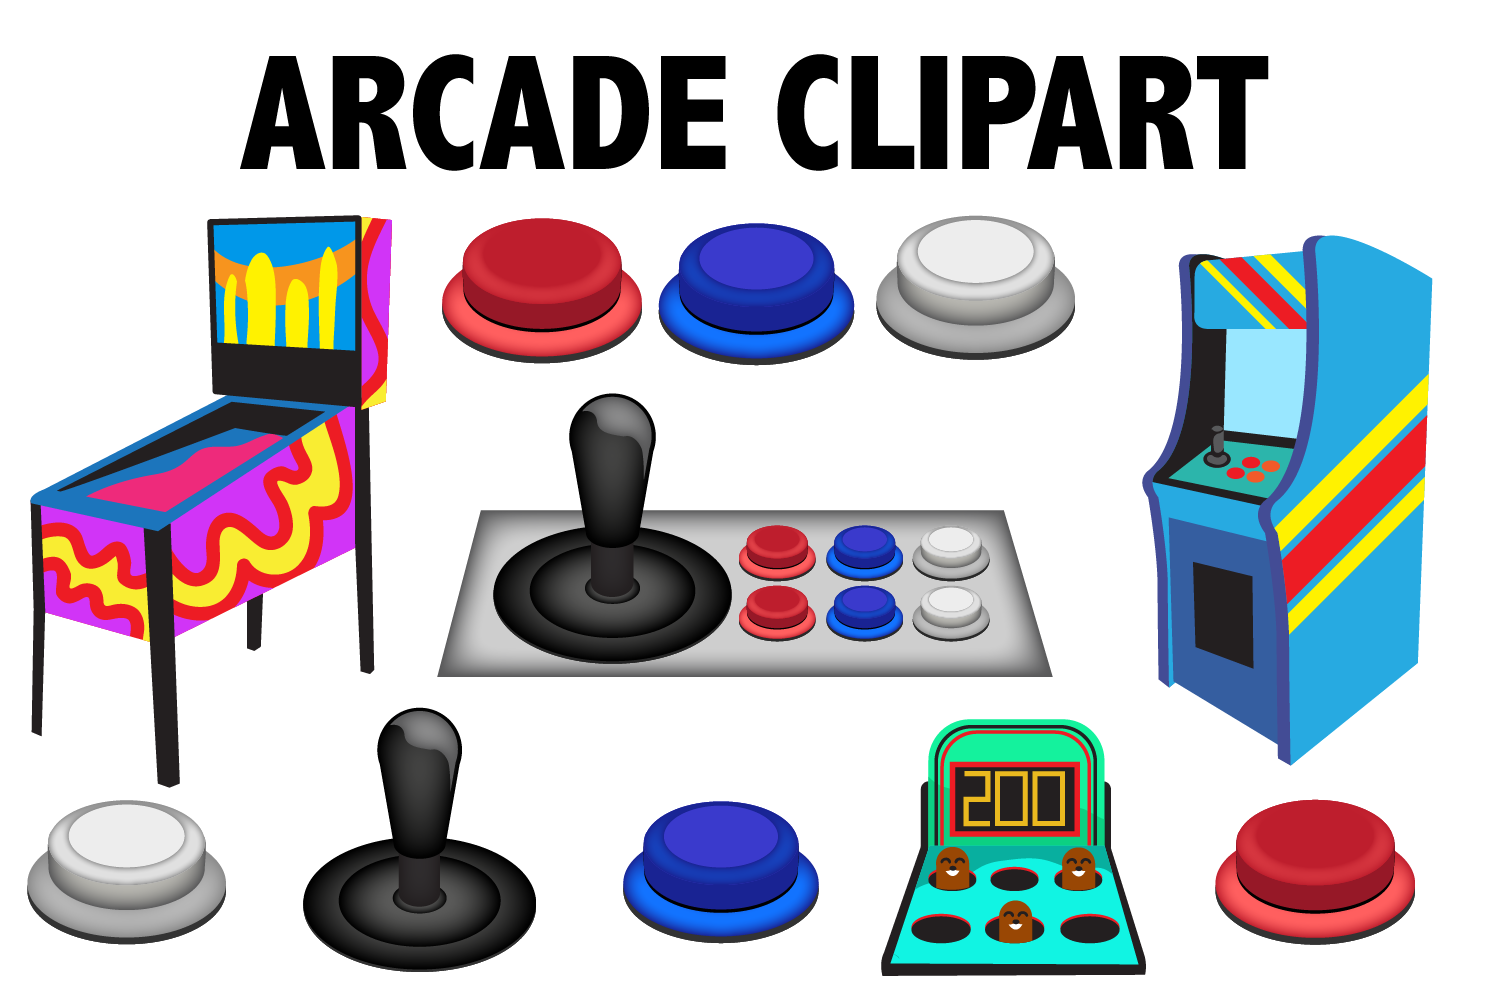 Download Free Arcade Game Clipart Graphic By Mine Eyes Design Creative Fabrica for Cricut Explore, Silhouette and other cutting machines.